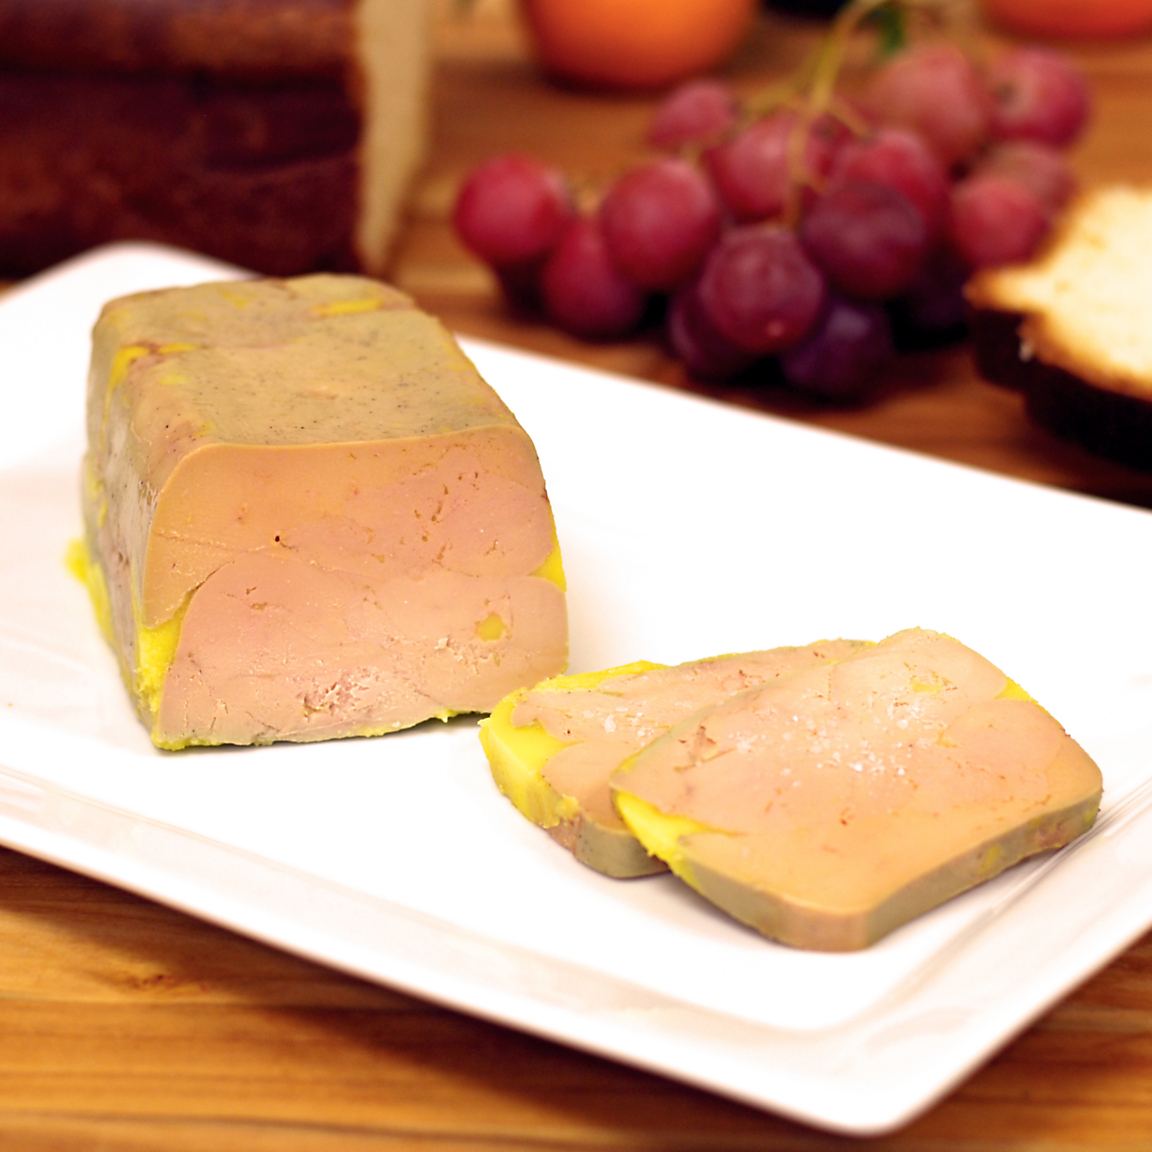 Foie Gras Terrine What Is Foie Gras Terrine Center Of The Plate D Artagnan Blog